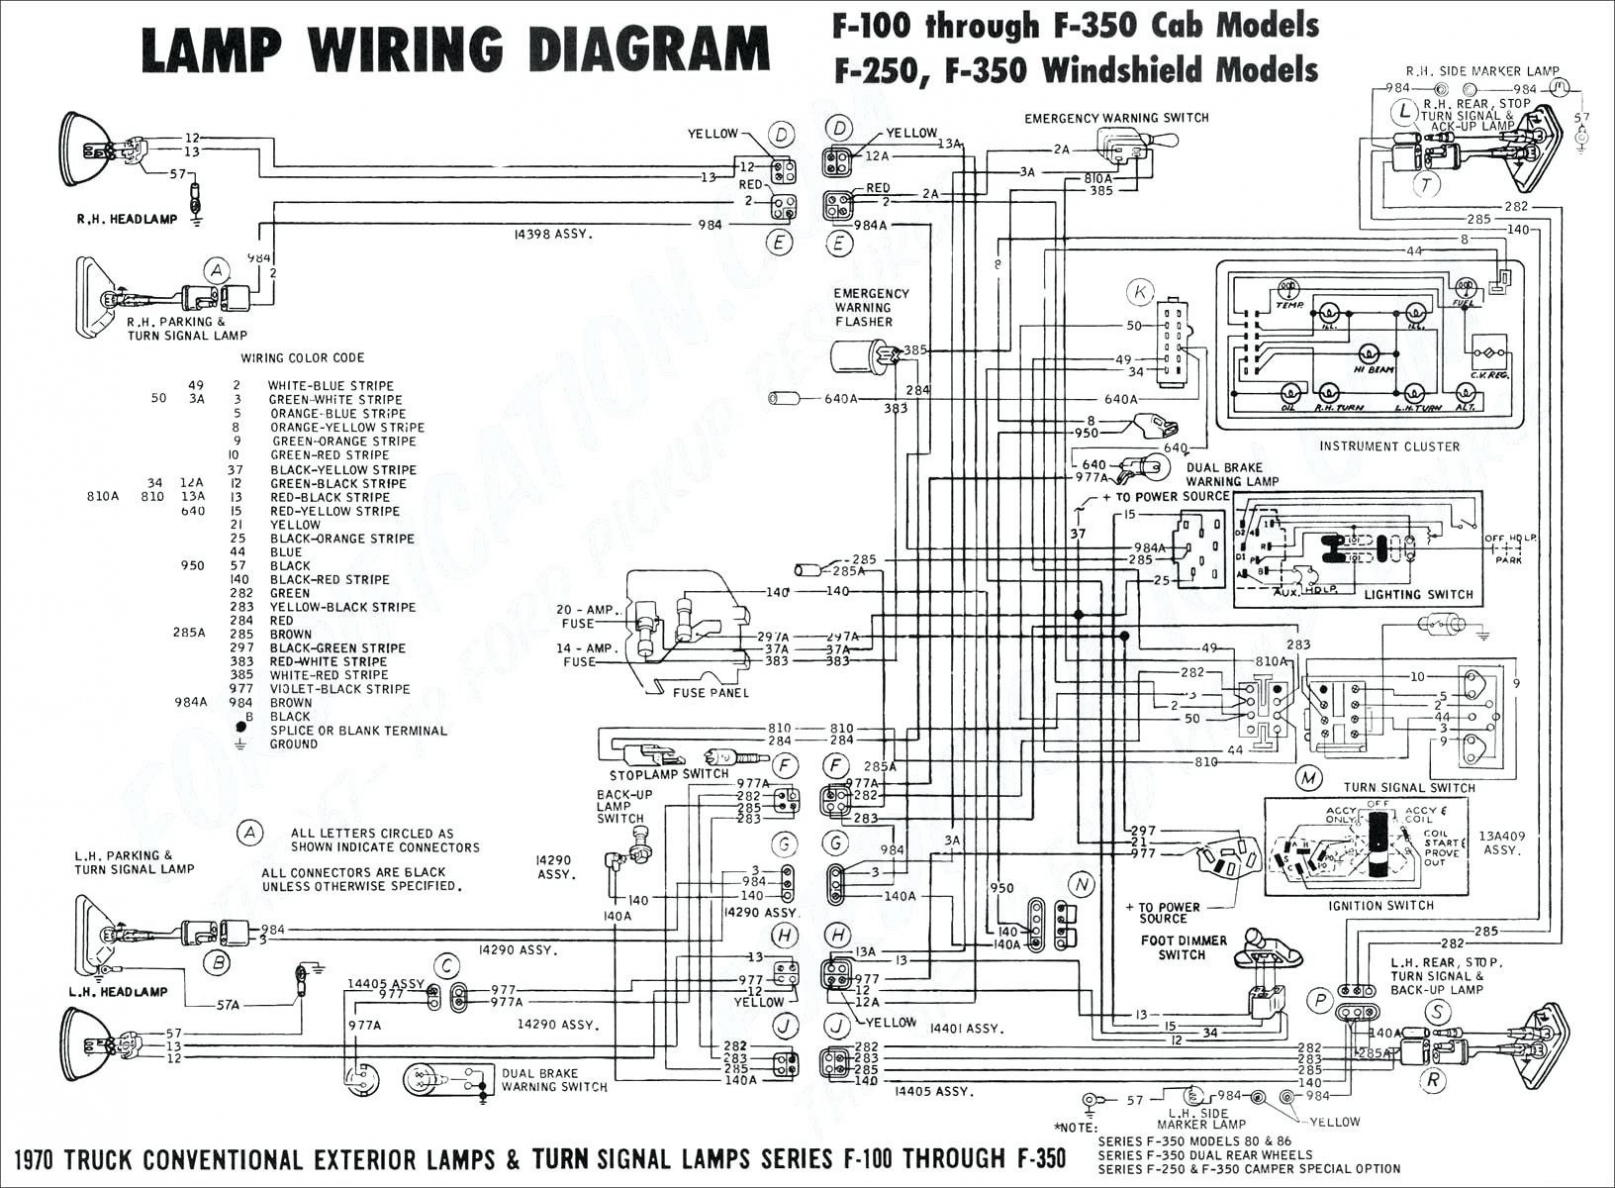 1997 Ford F150 Trailer Wiring Diagram Beautiful 1973 1979 Ford Truck - 2004 F150 Trailer Wiring Diagram